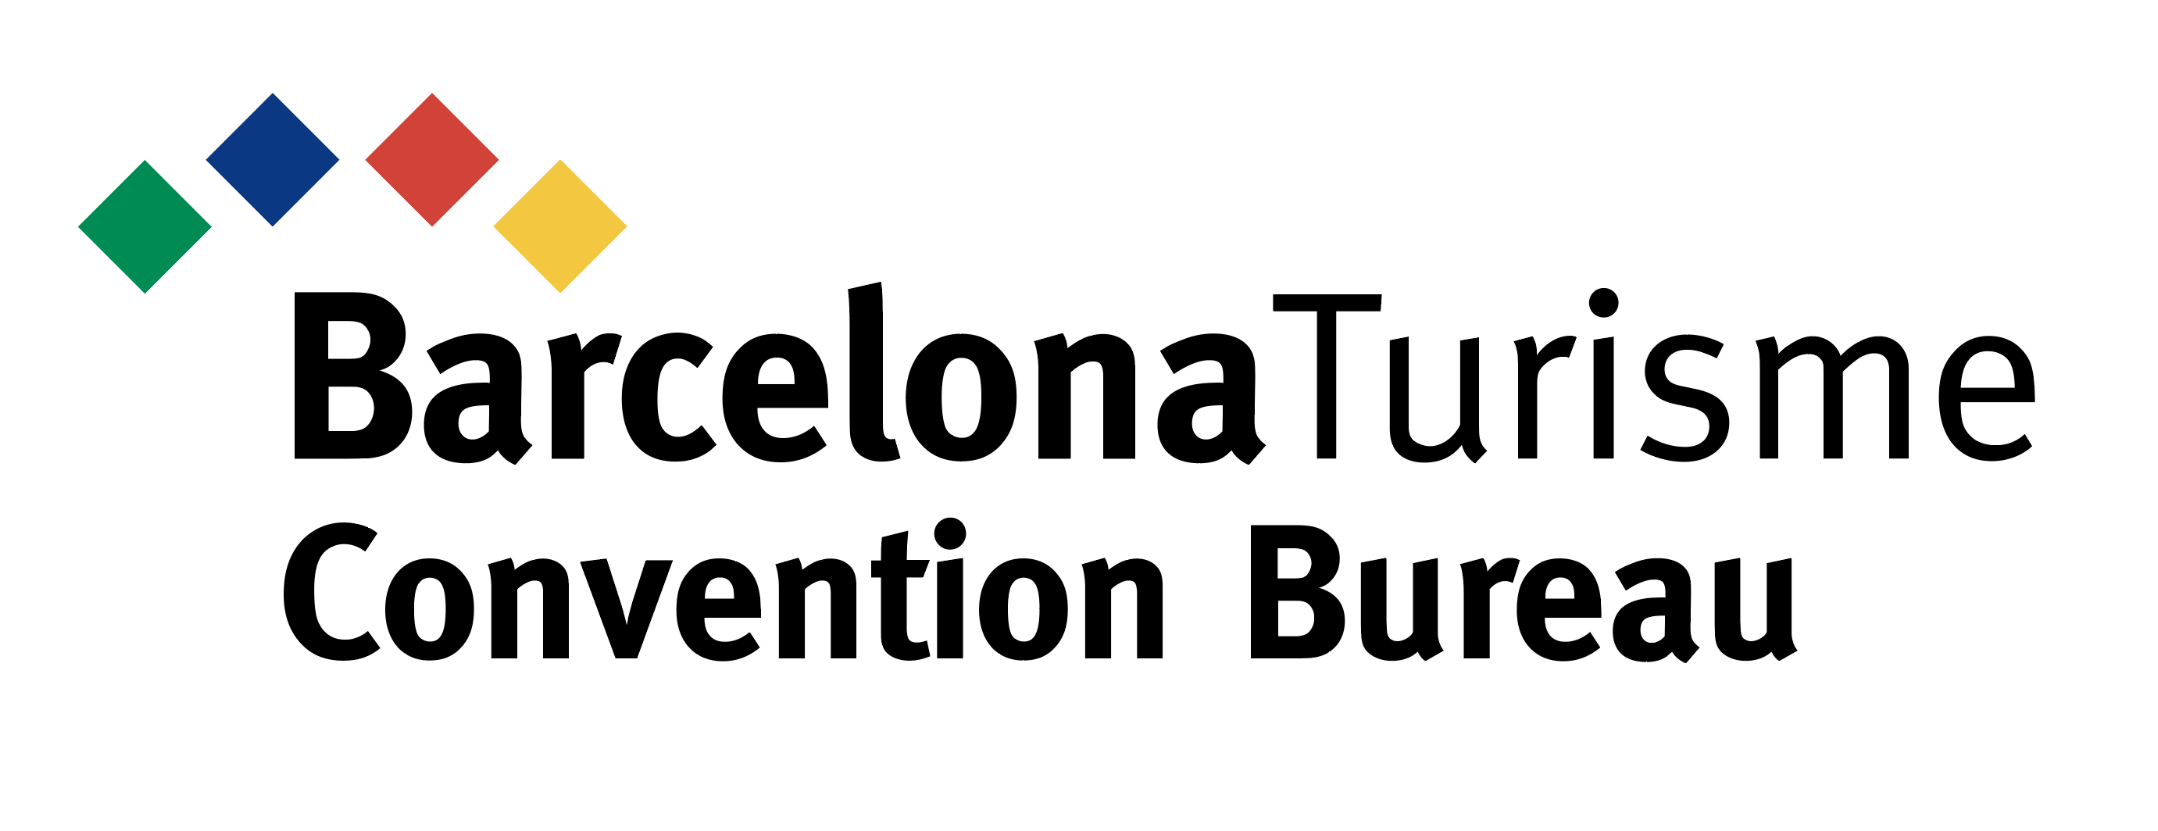 Barcelona Turismo Convention Bureau